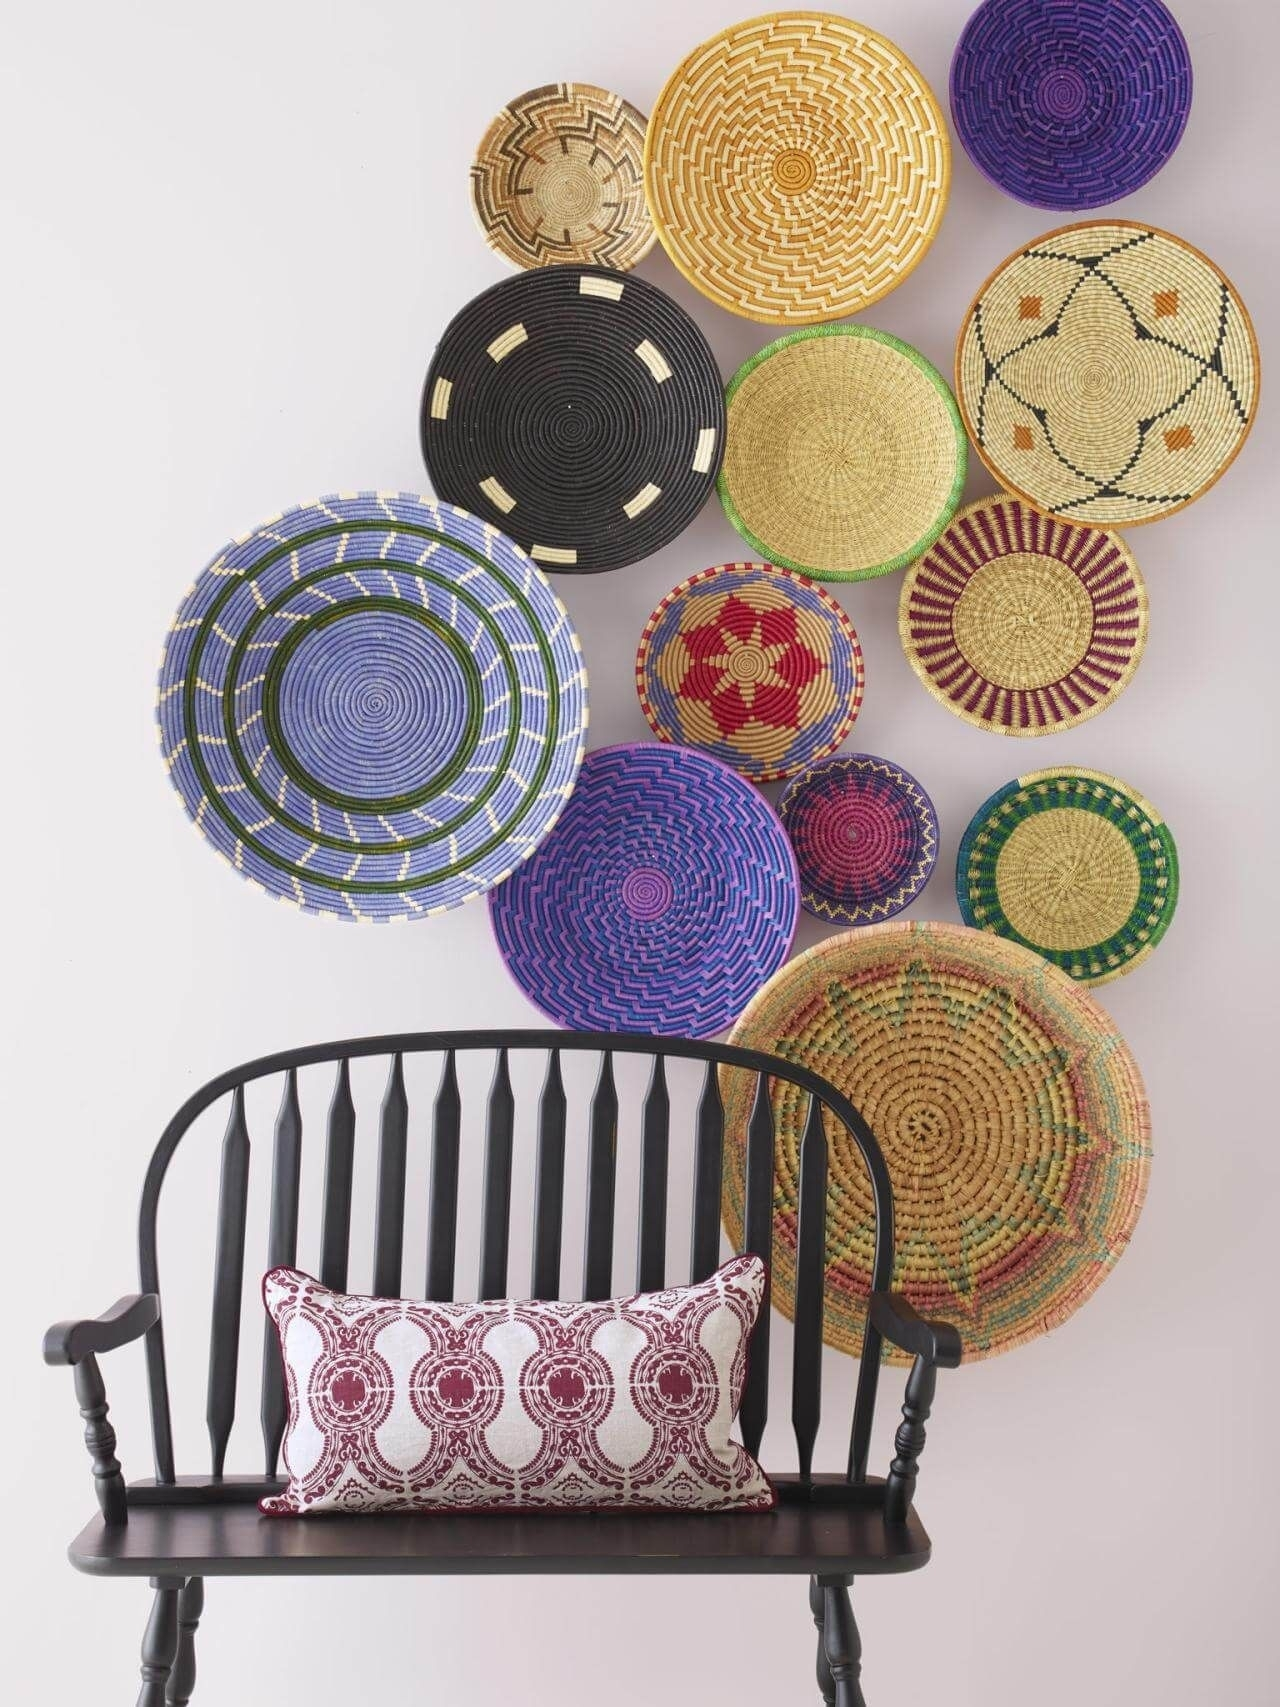 10 Simple Wall Decor Ideas For Your Living Room   Wall Décor, Walls Pertaining To Latest Woven Basket Wall Art (View 8 of 20)